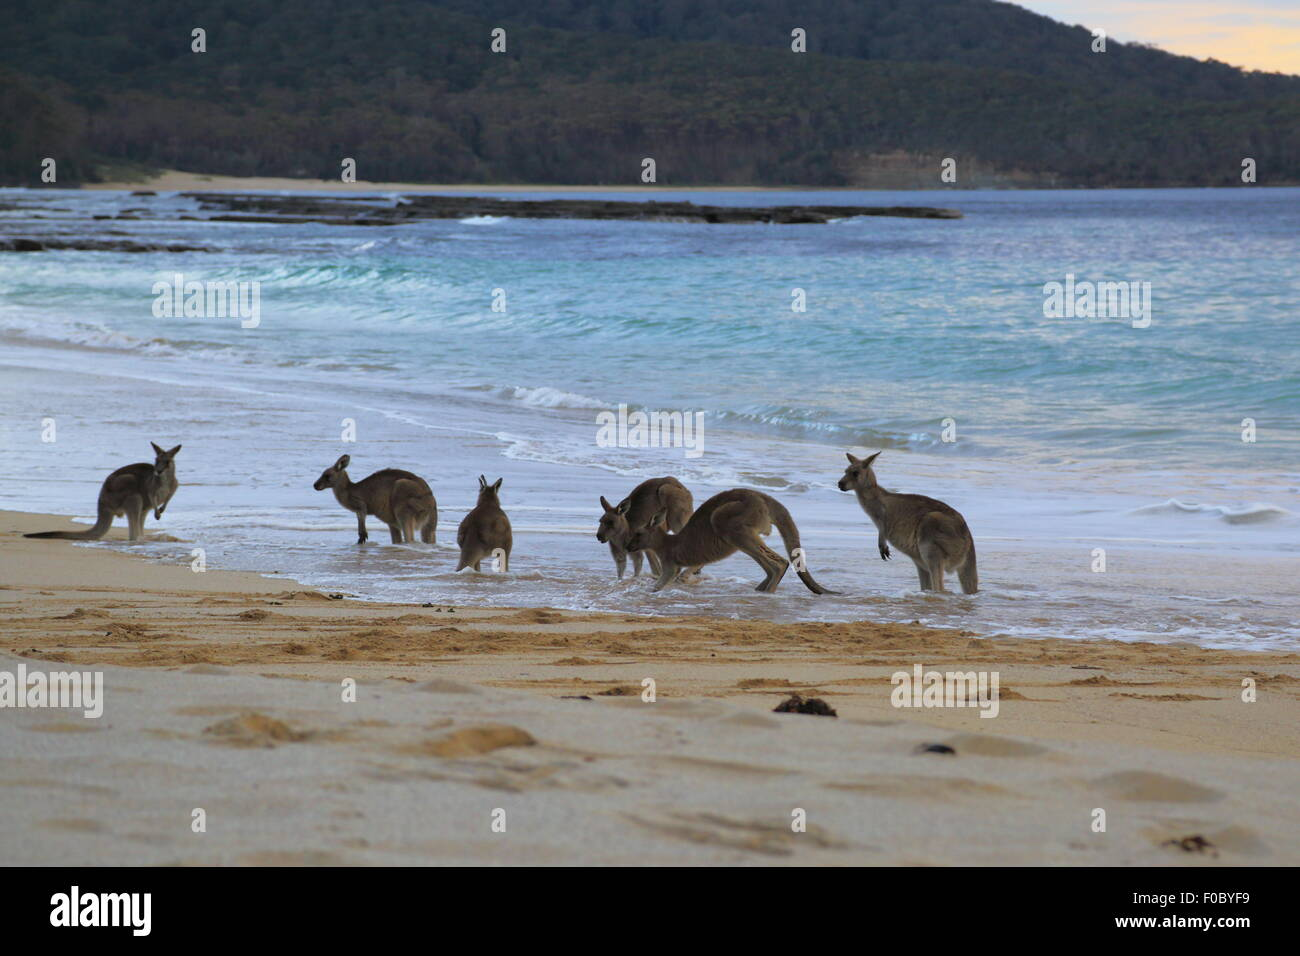 A small mob of kangaroos in the surf at Depot Beach in Murramarang National Park, New South Wales, Australia. - Stock Image